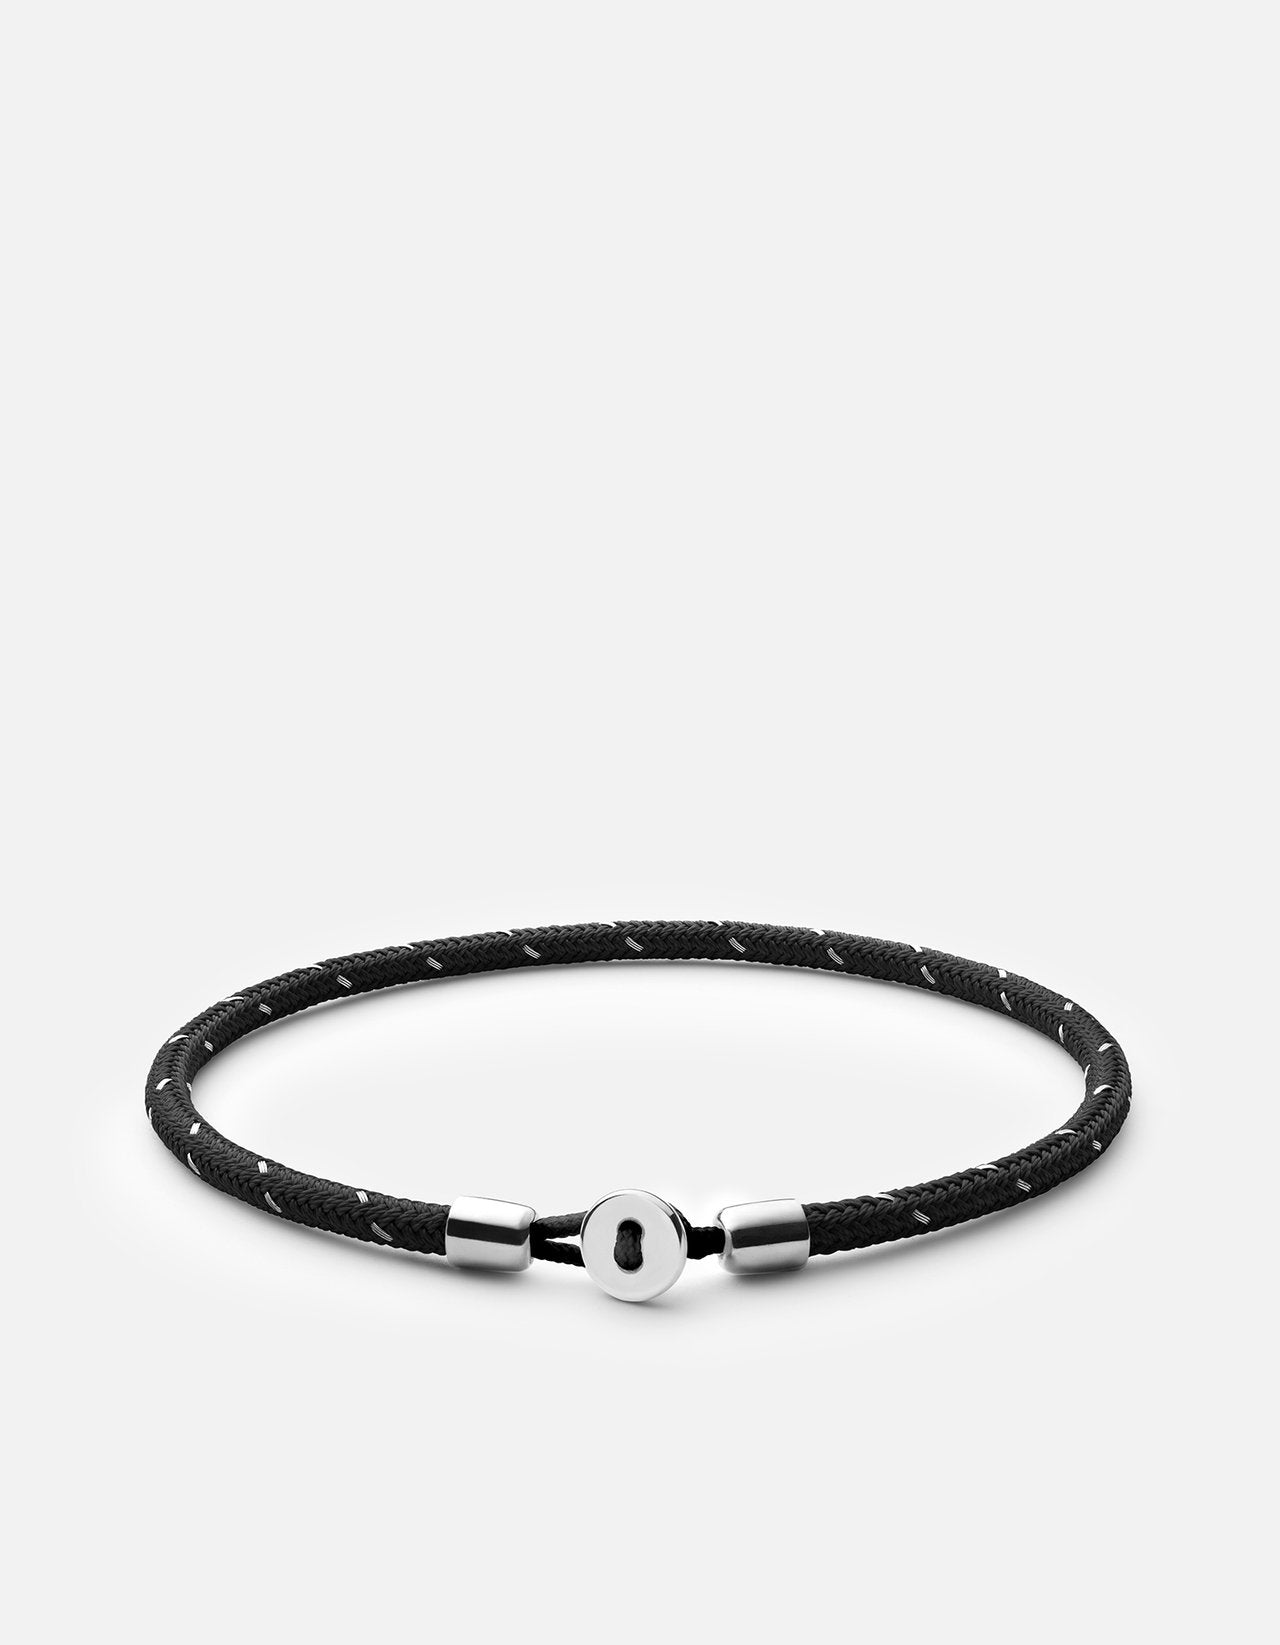 Miansai Nexus Rope Bracelet, Sterling Silver, Polished Black/Steel